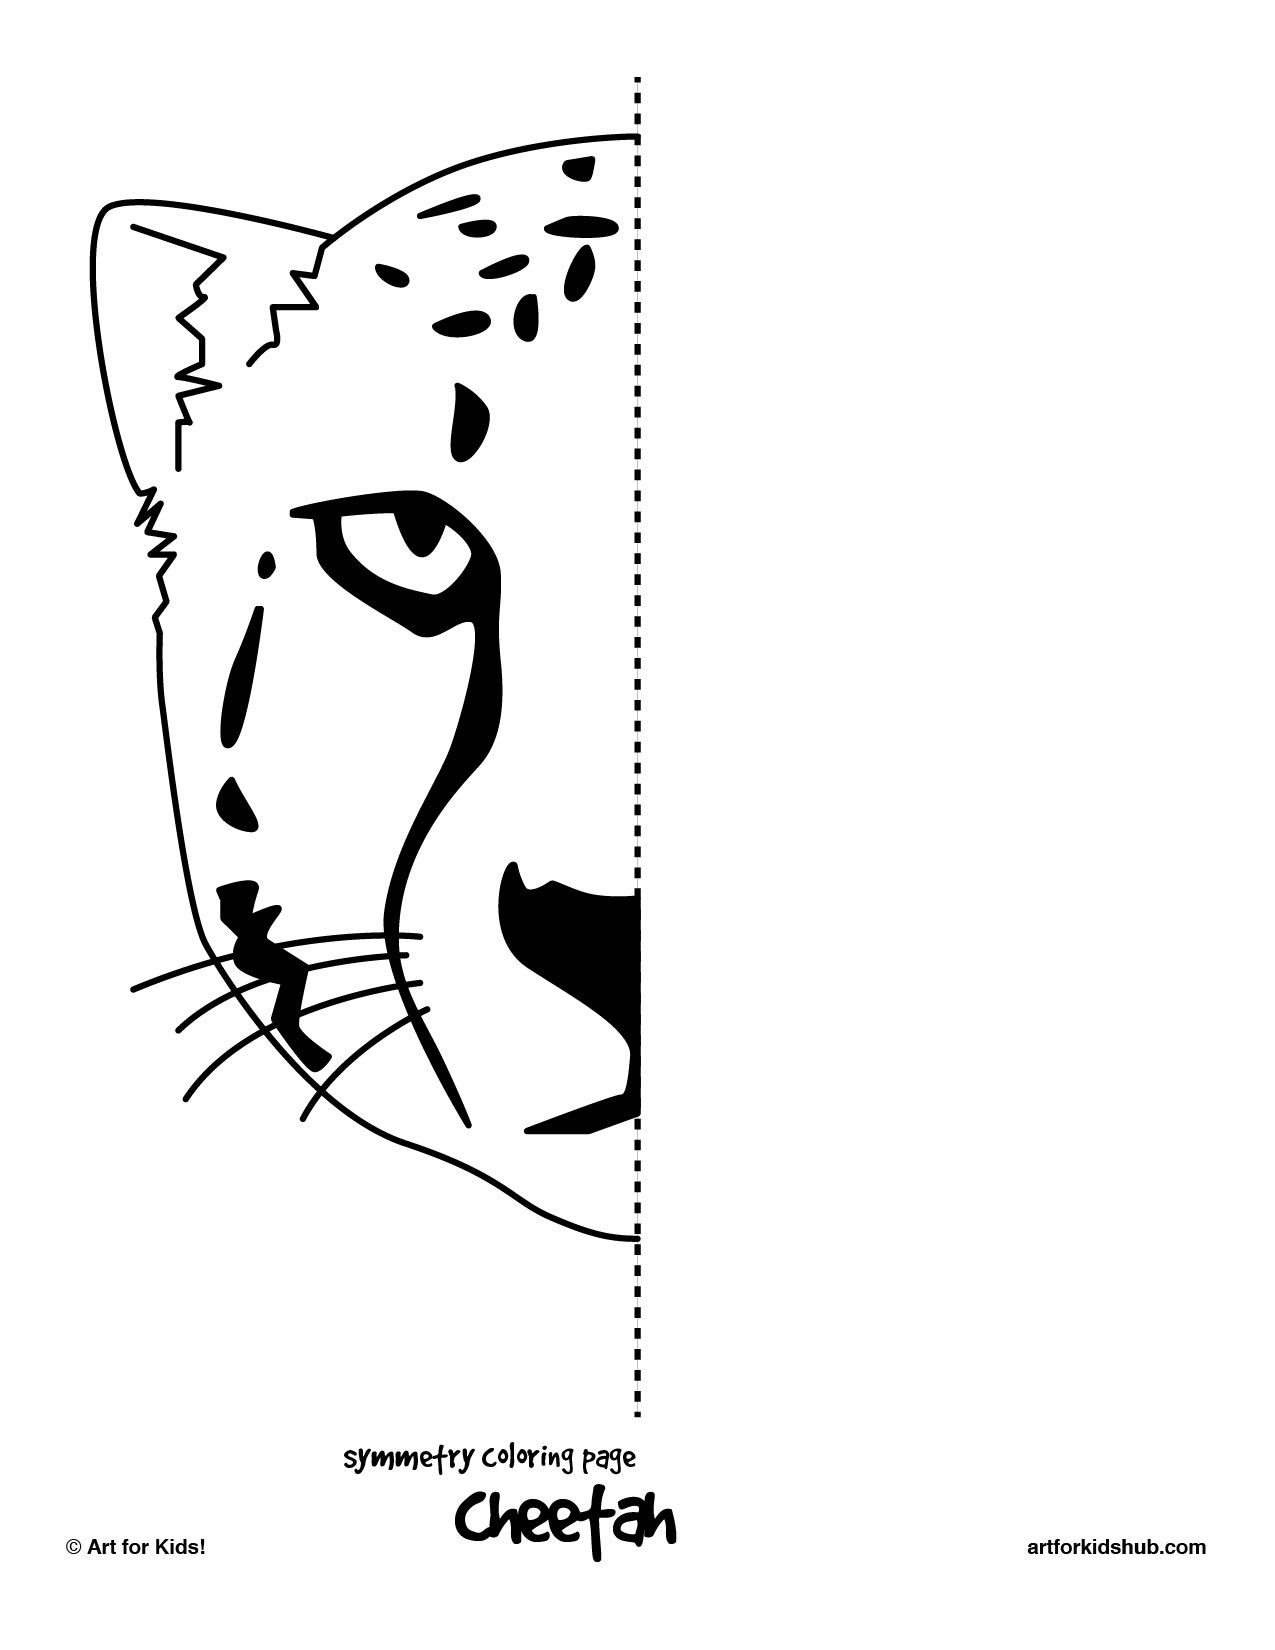 Uncategorized Animal Symmetry Worksheet i made 6 free coloring pages to illustrate symmetry that is my